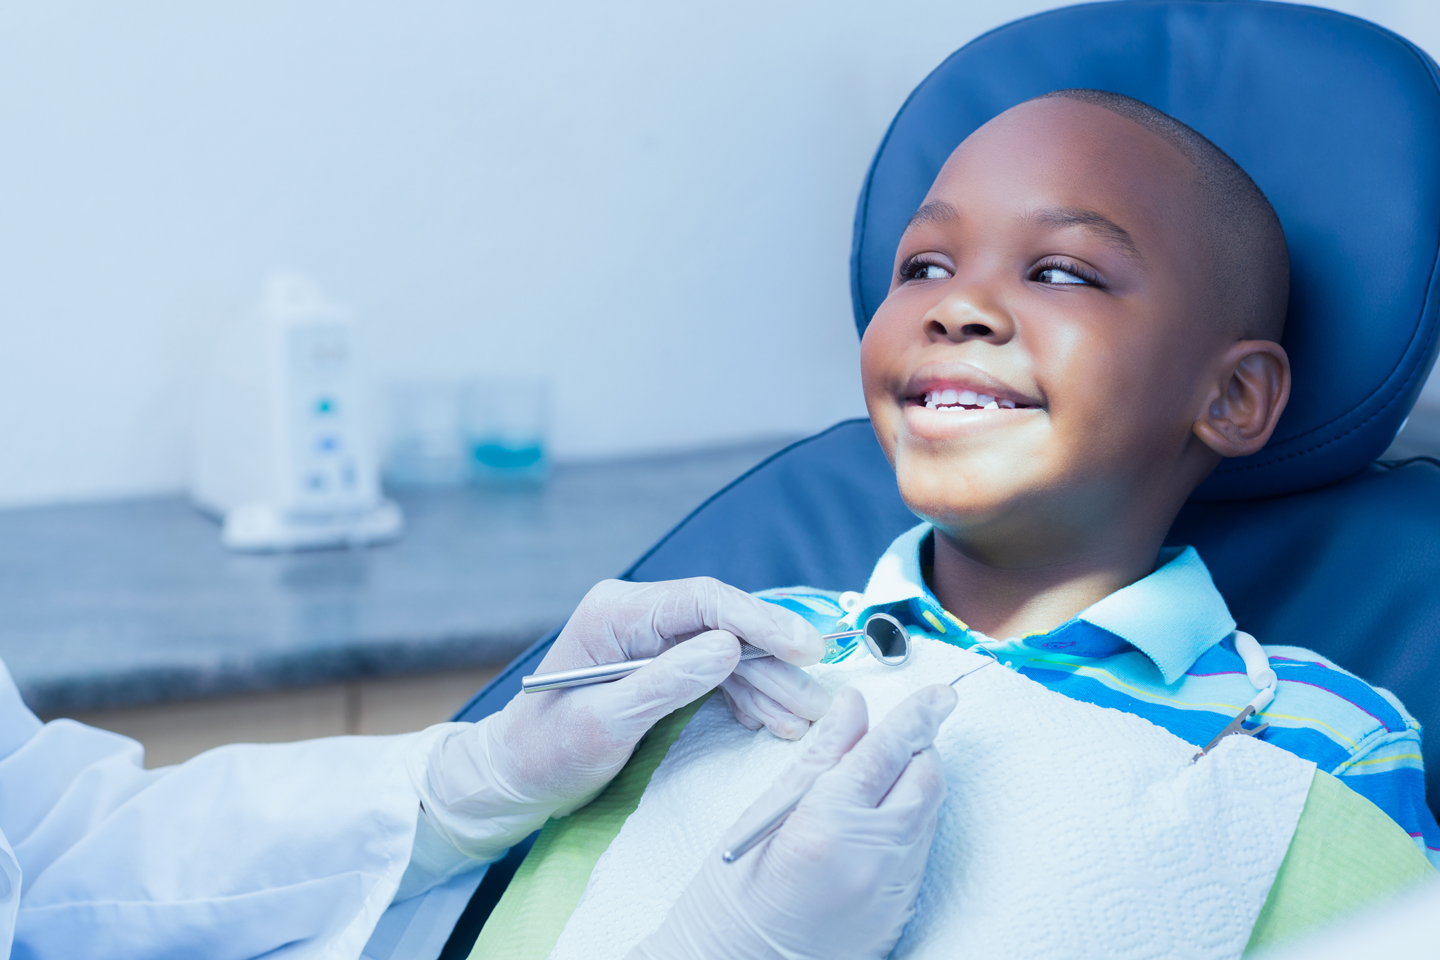 Did you know October is National Dental Hygiene Month?